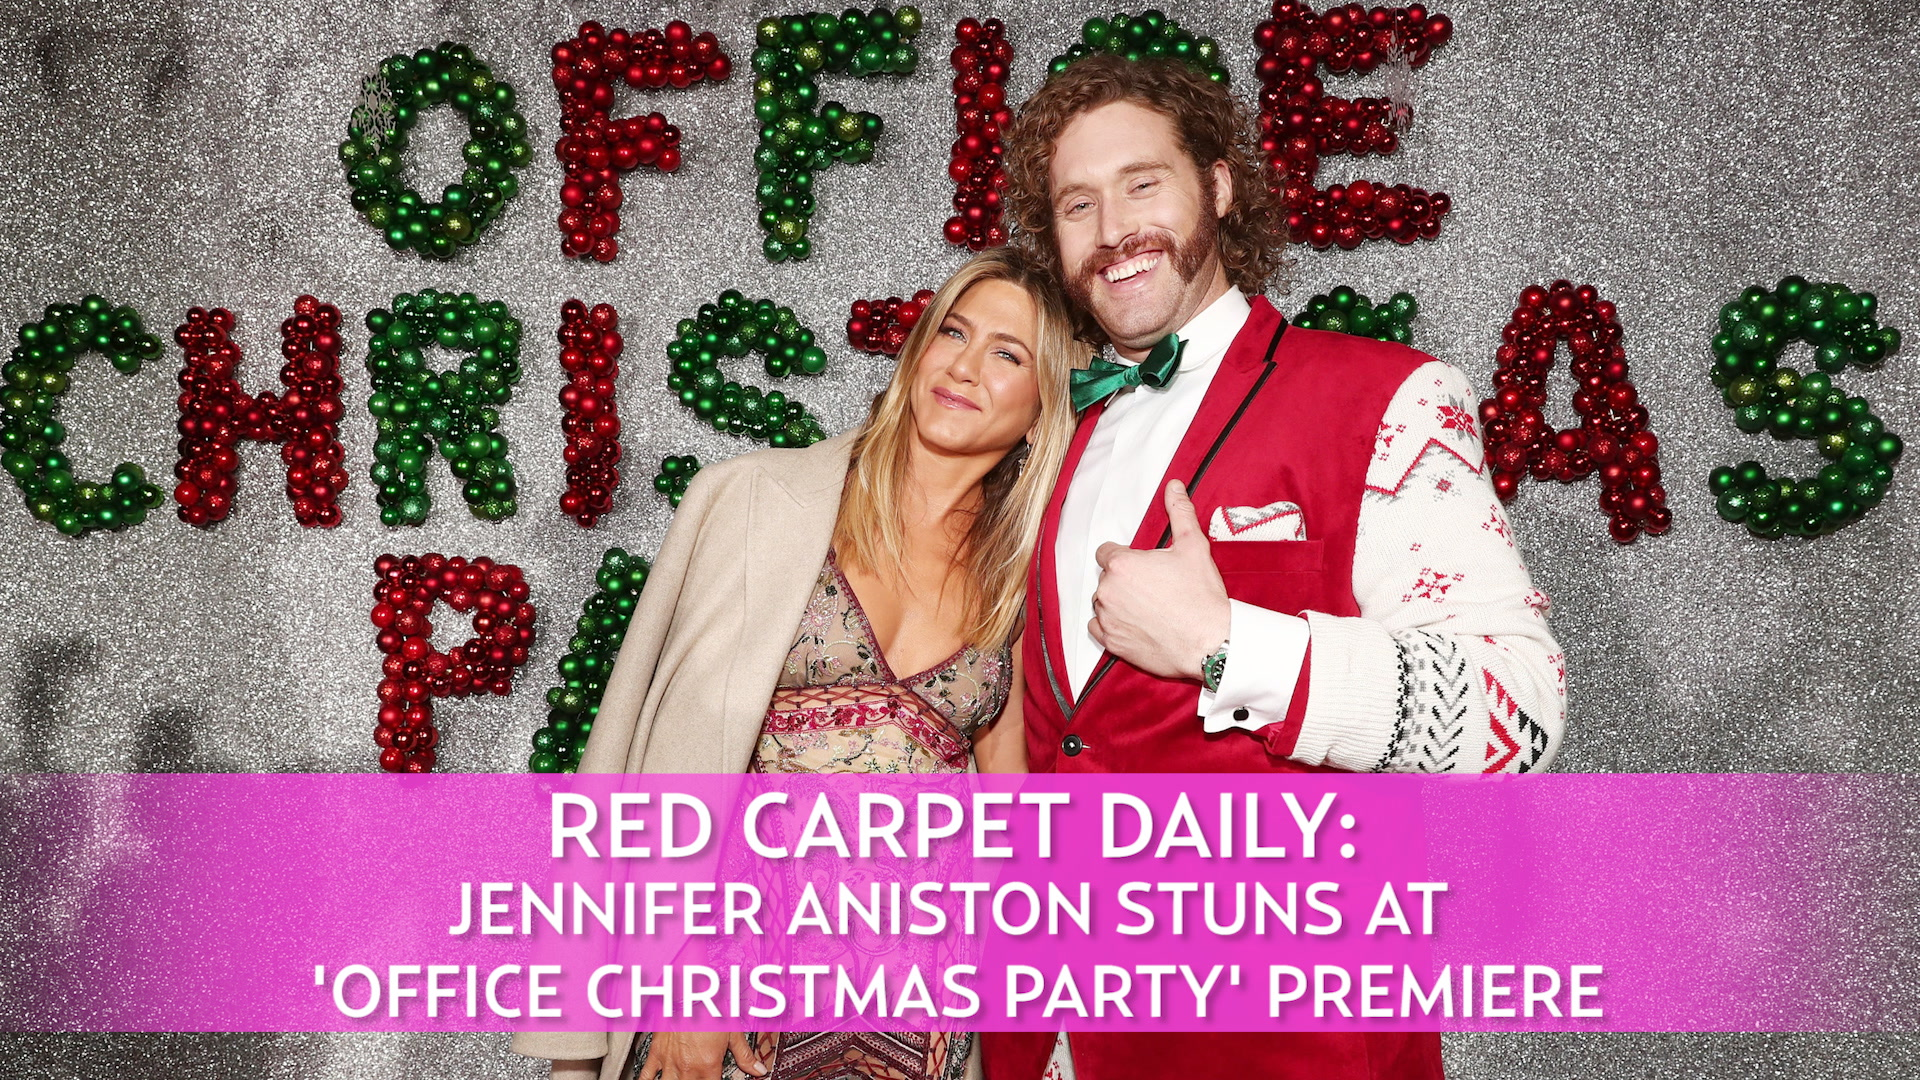 Jennifer Aniston Wears Embroidered Dress on the Red Carpet: Video